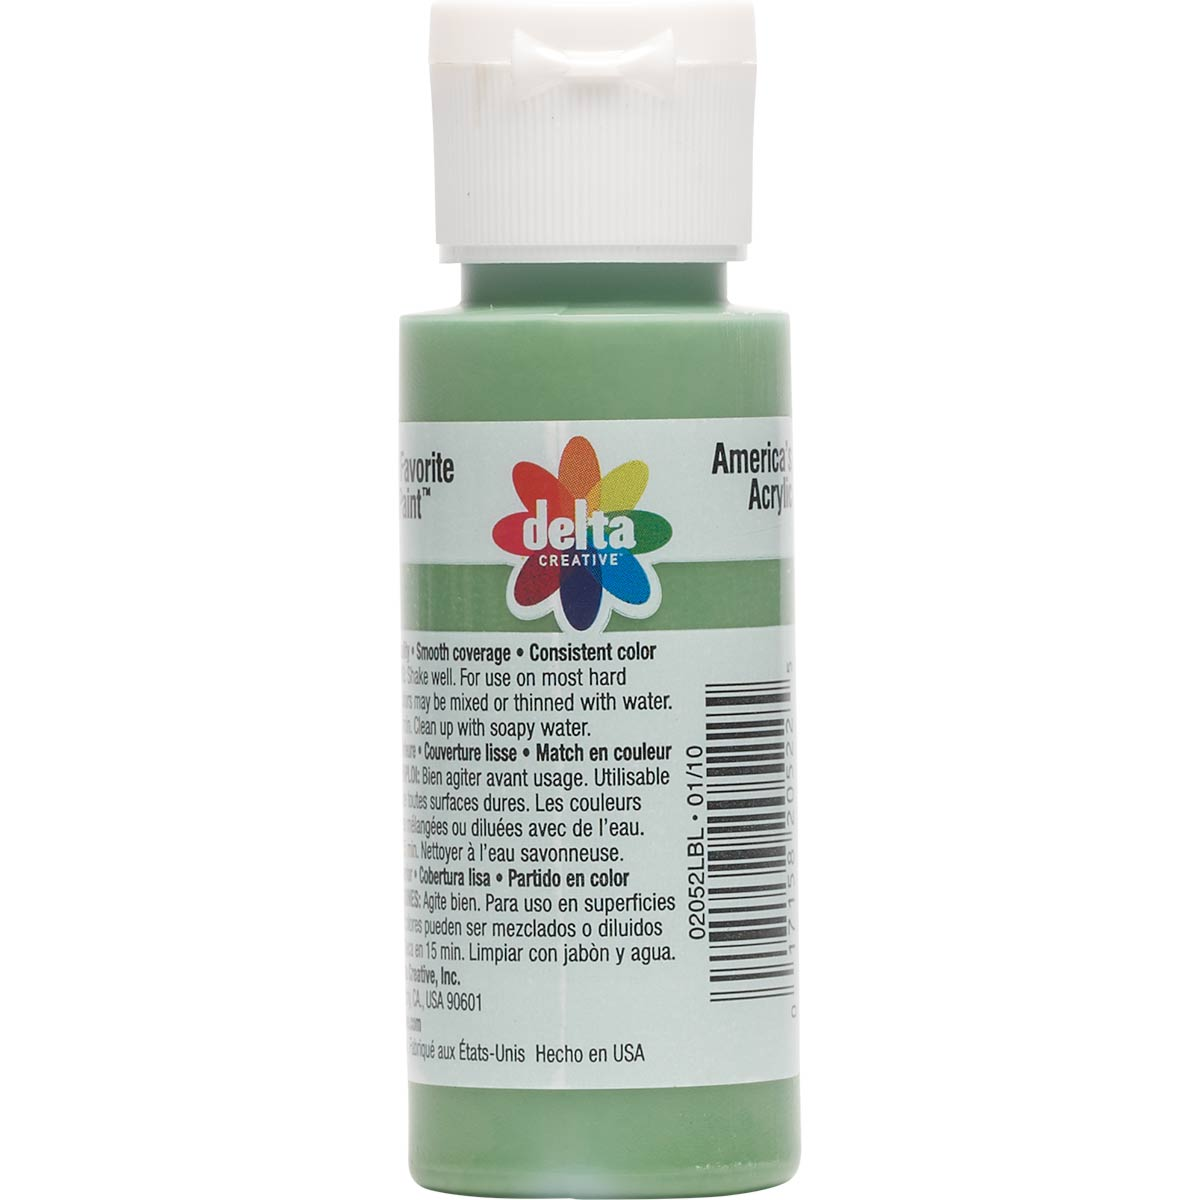 Delta Ceramcoat ® Acrylic Paint - Kelly Green, 2 oz. - 020520202W